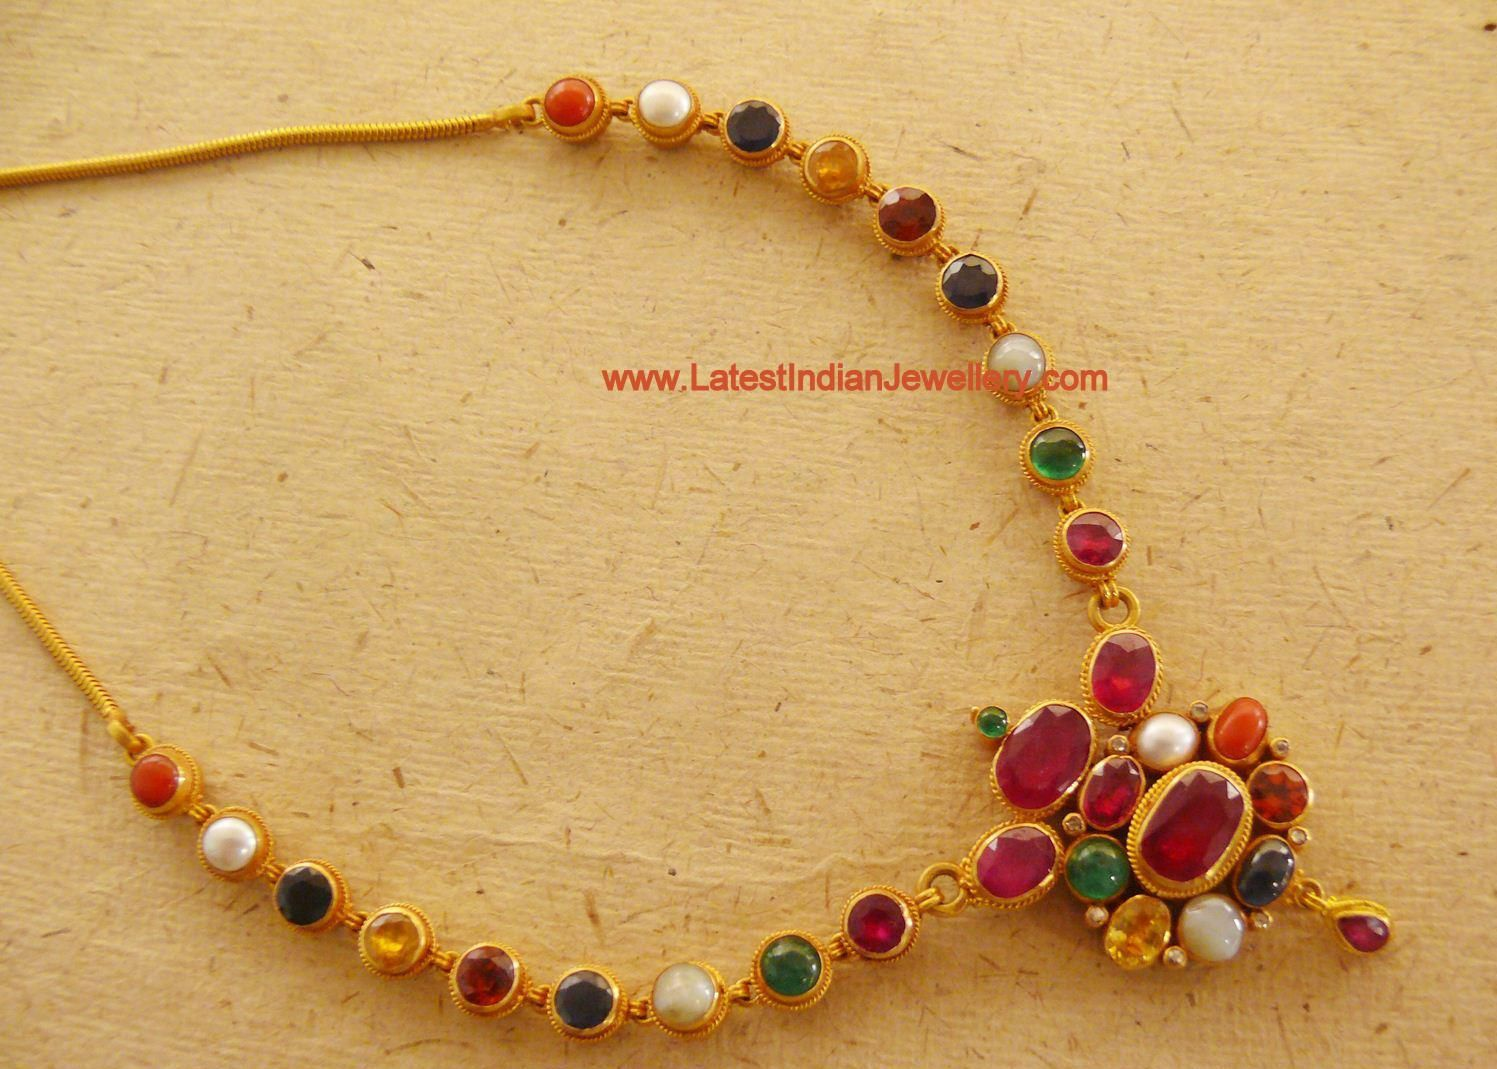 Gorgeous Navaratna Gold Necklace Antic Jewelleryindian Jewellery Designtemple